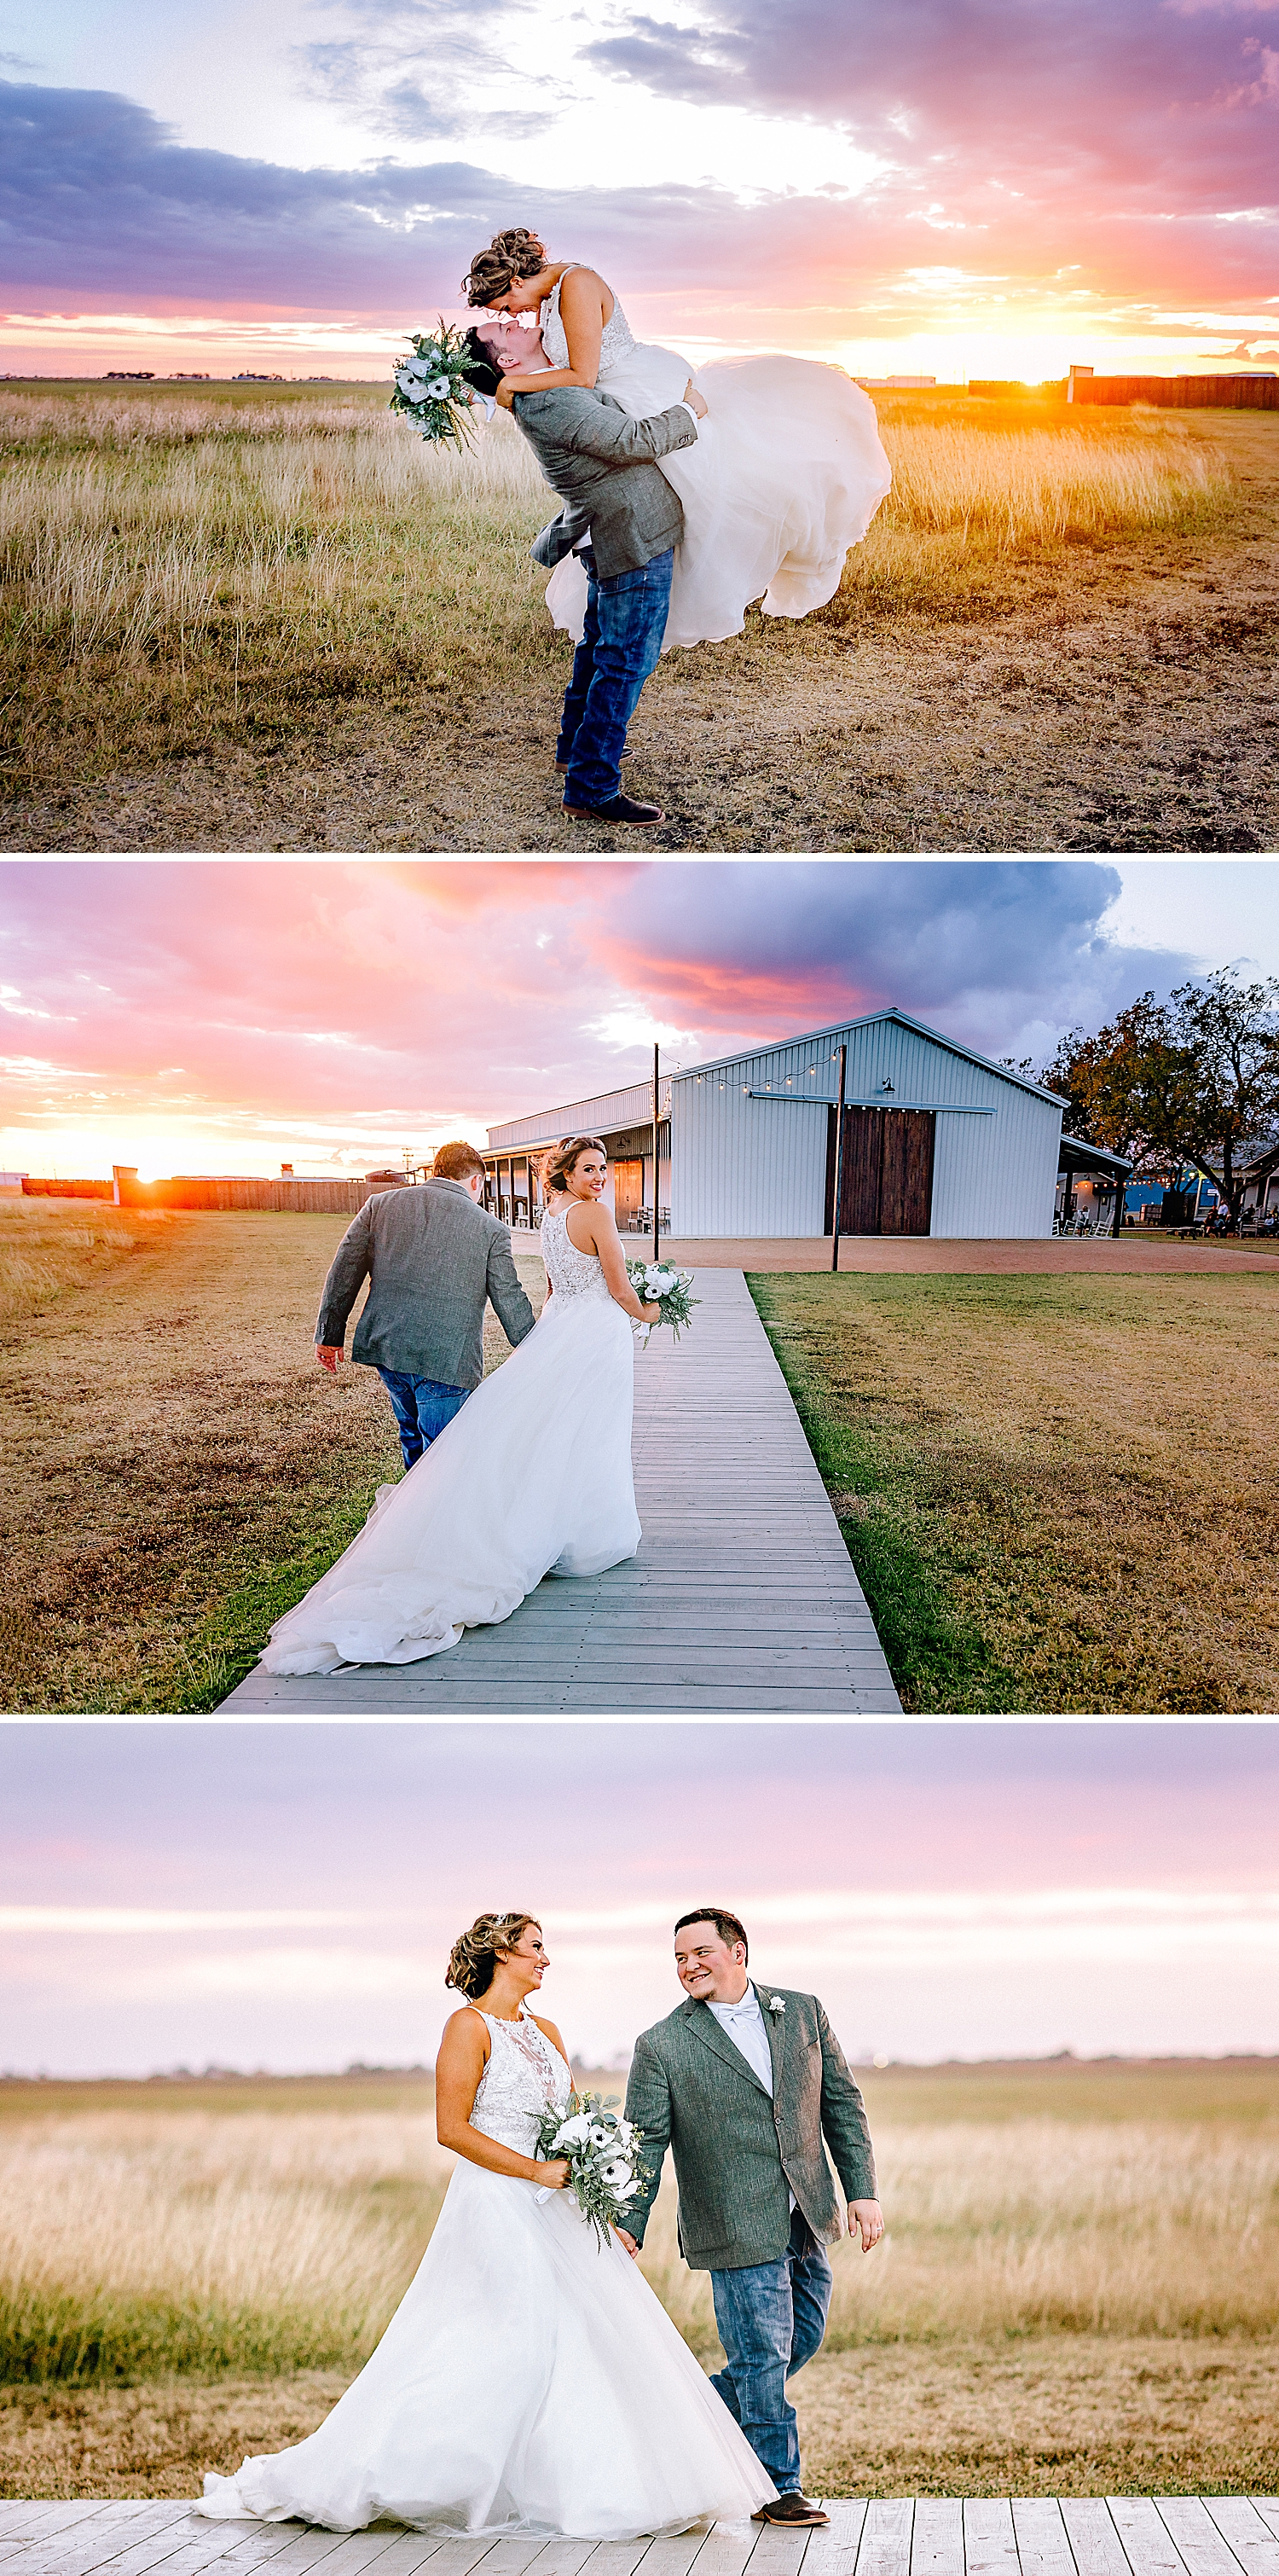 Allen-Farmhaus-New-Braunfels-Wedding-Carly-Barton-Photography_0035.jpg